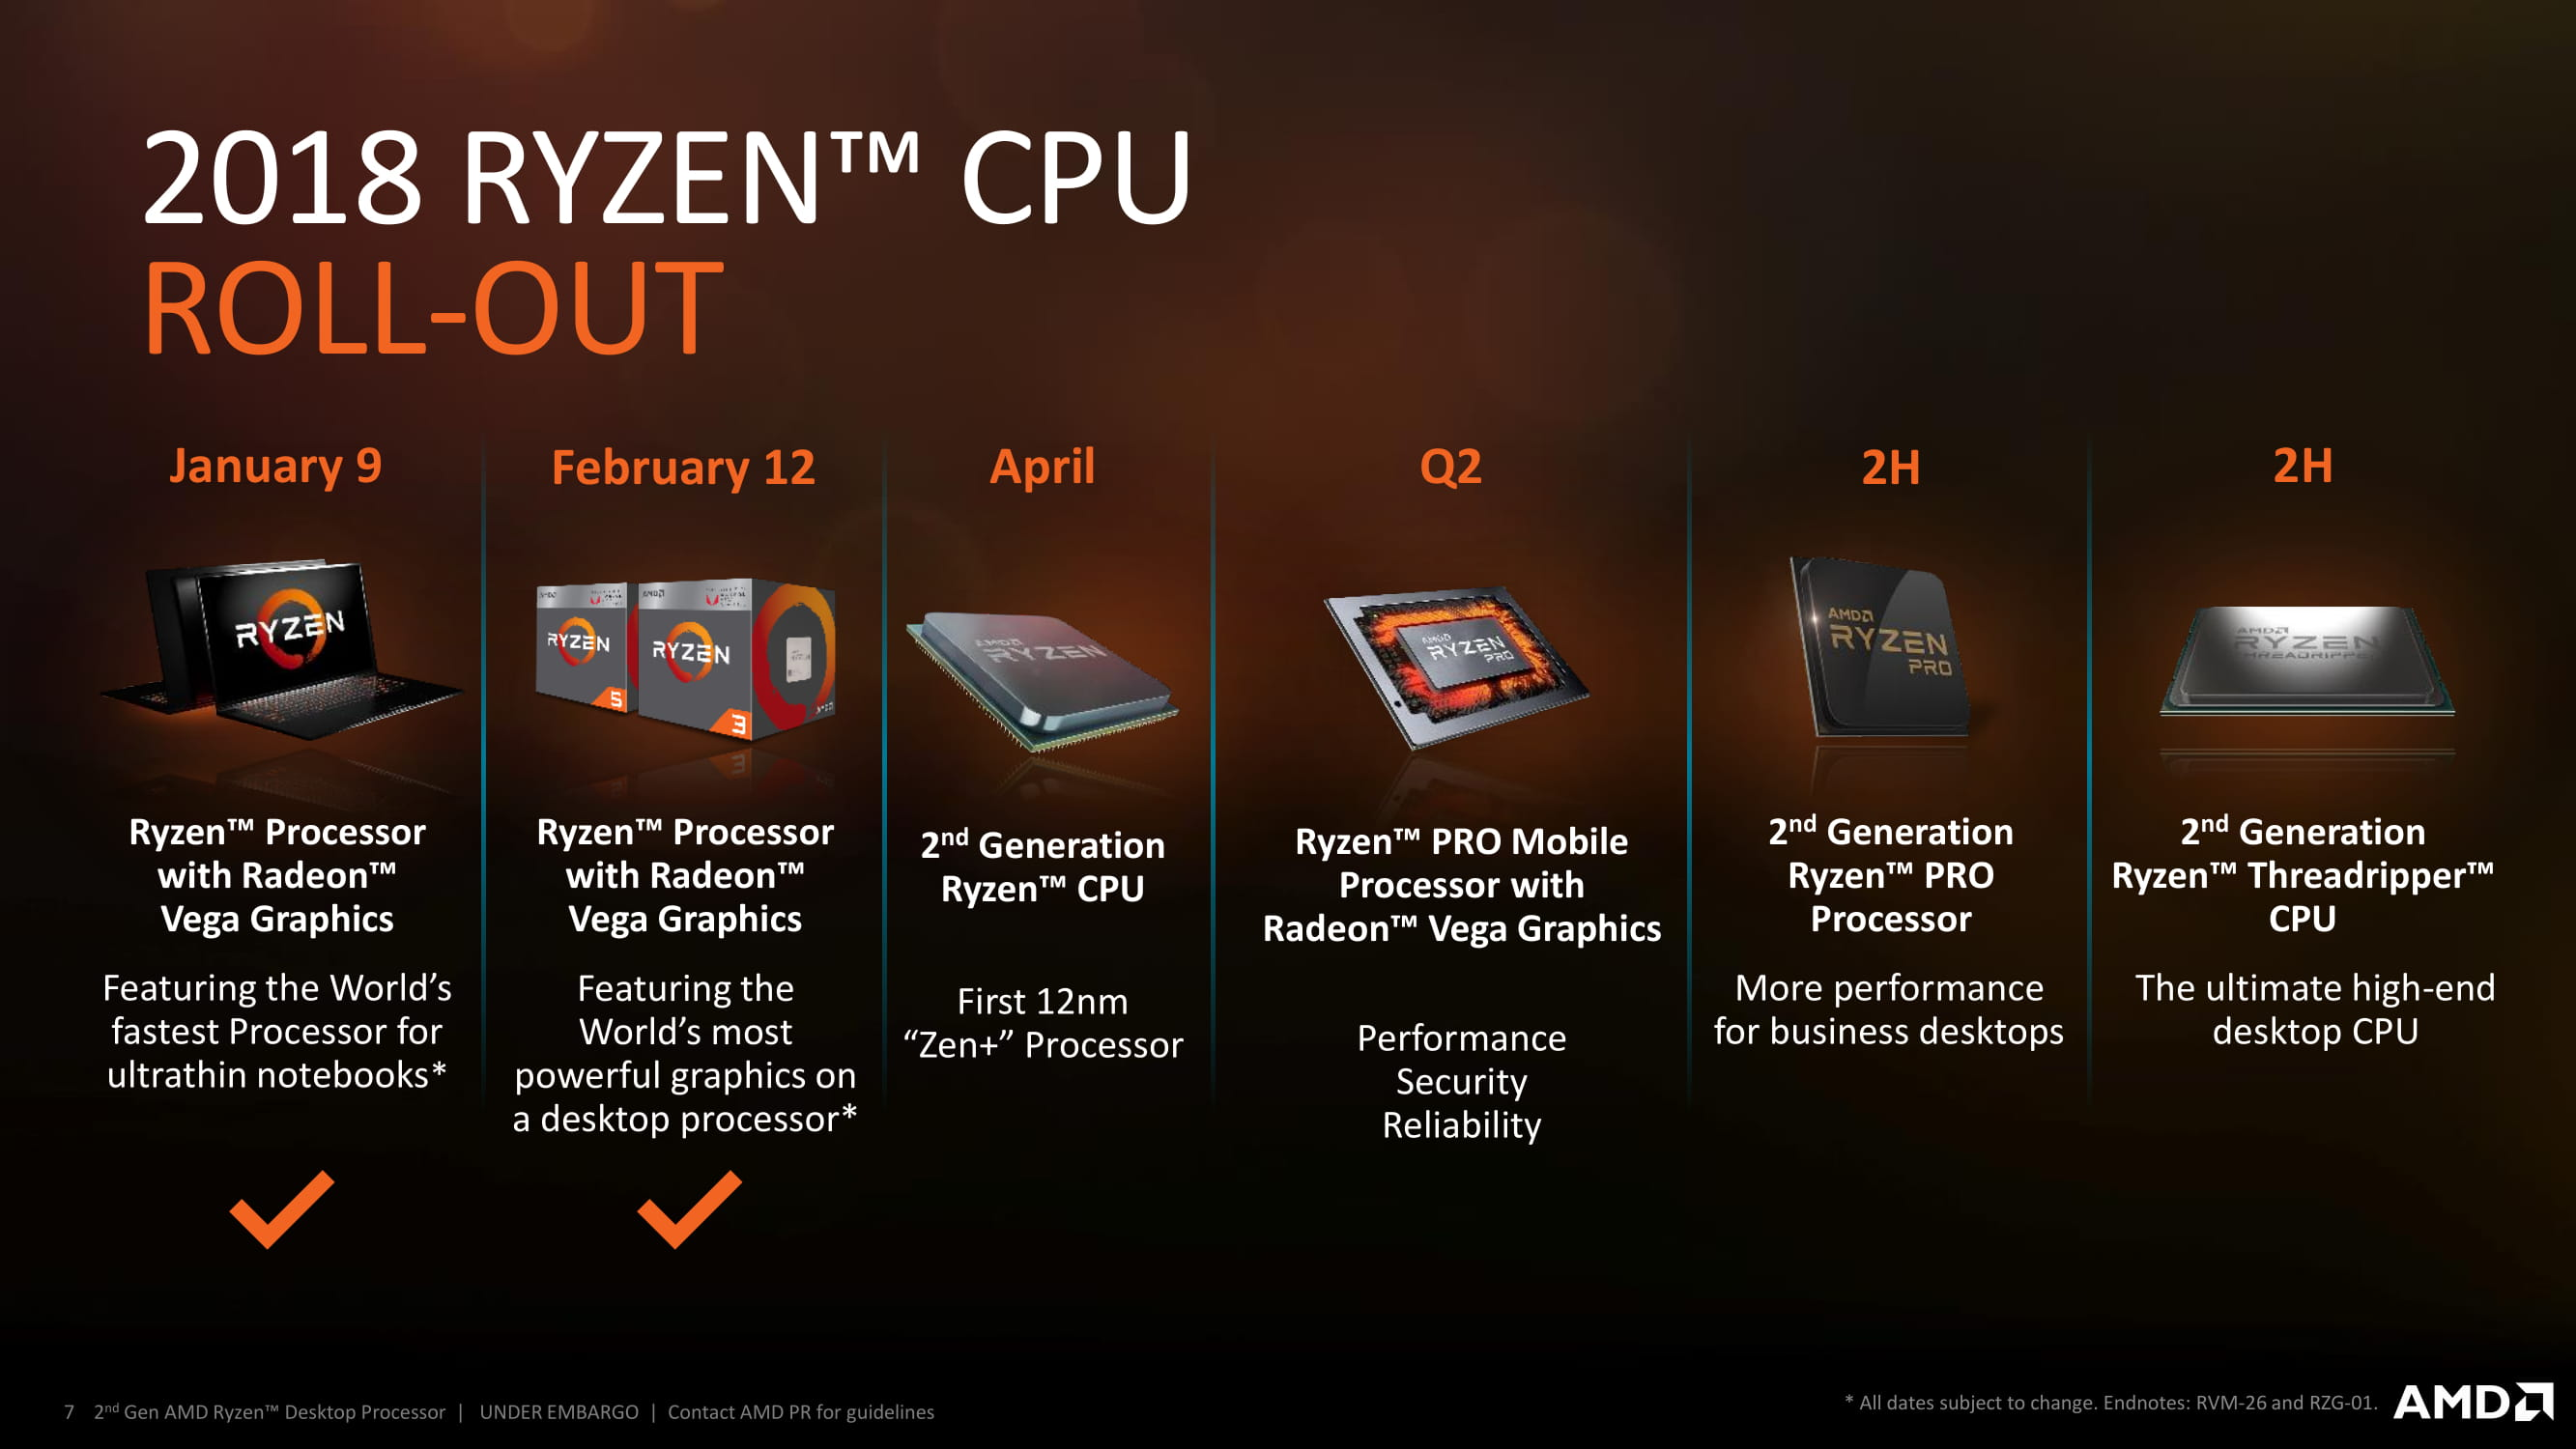 2nd Gen AMD Ryzen Desktop Processor-2-07.jpg